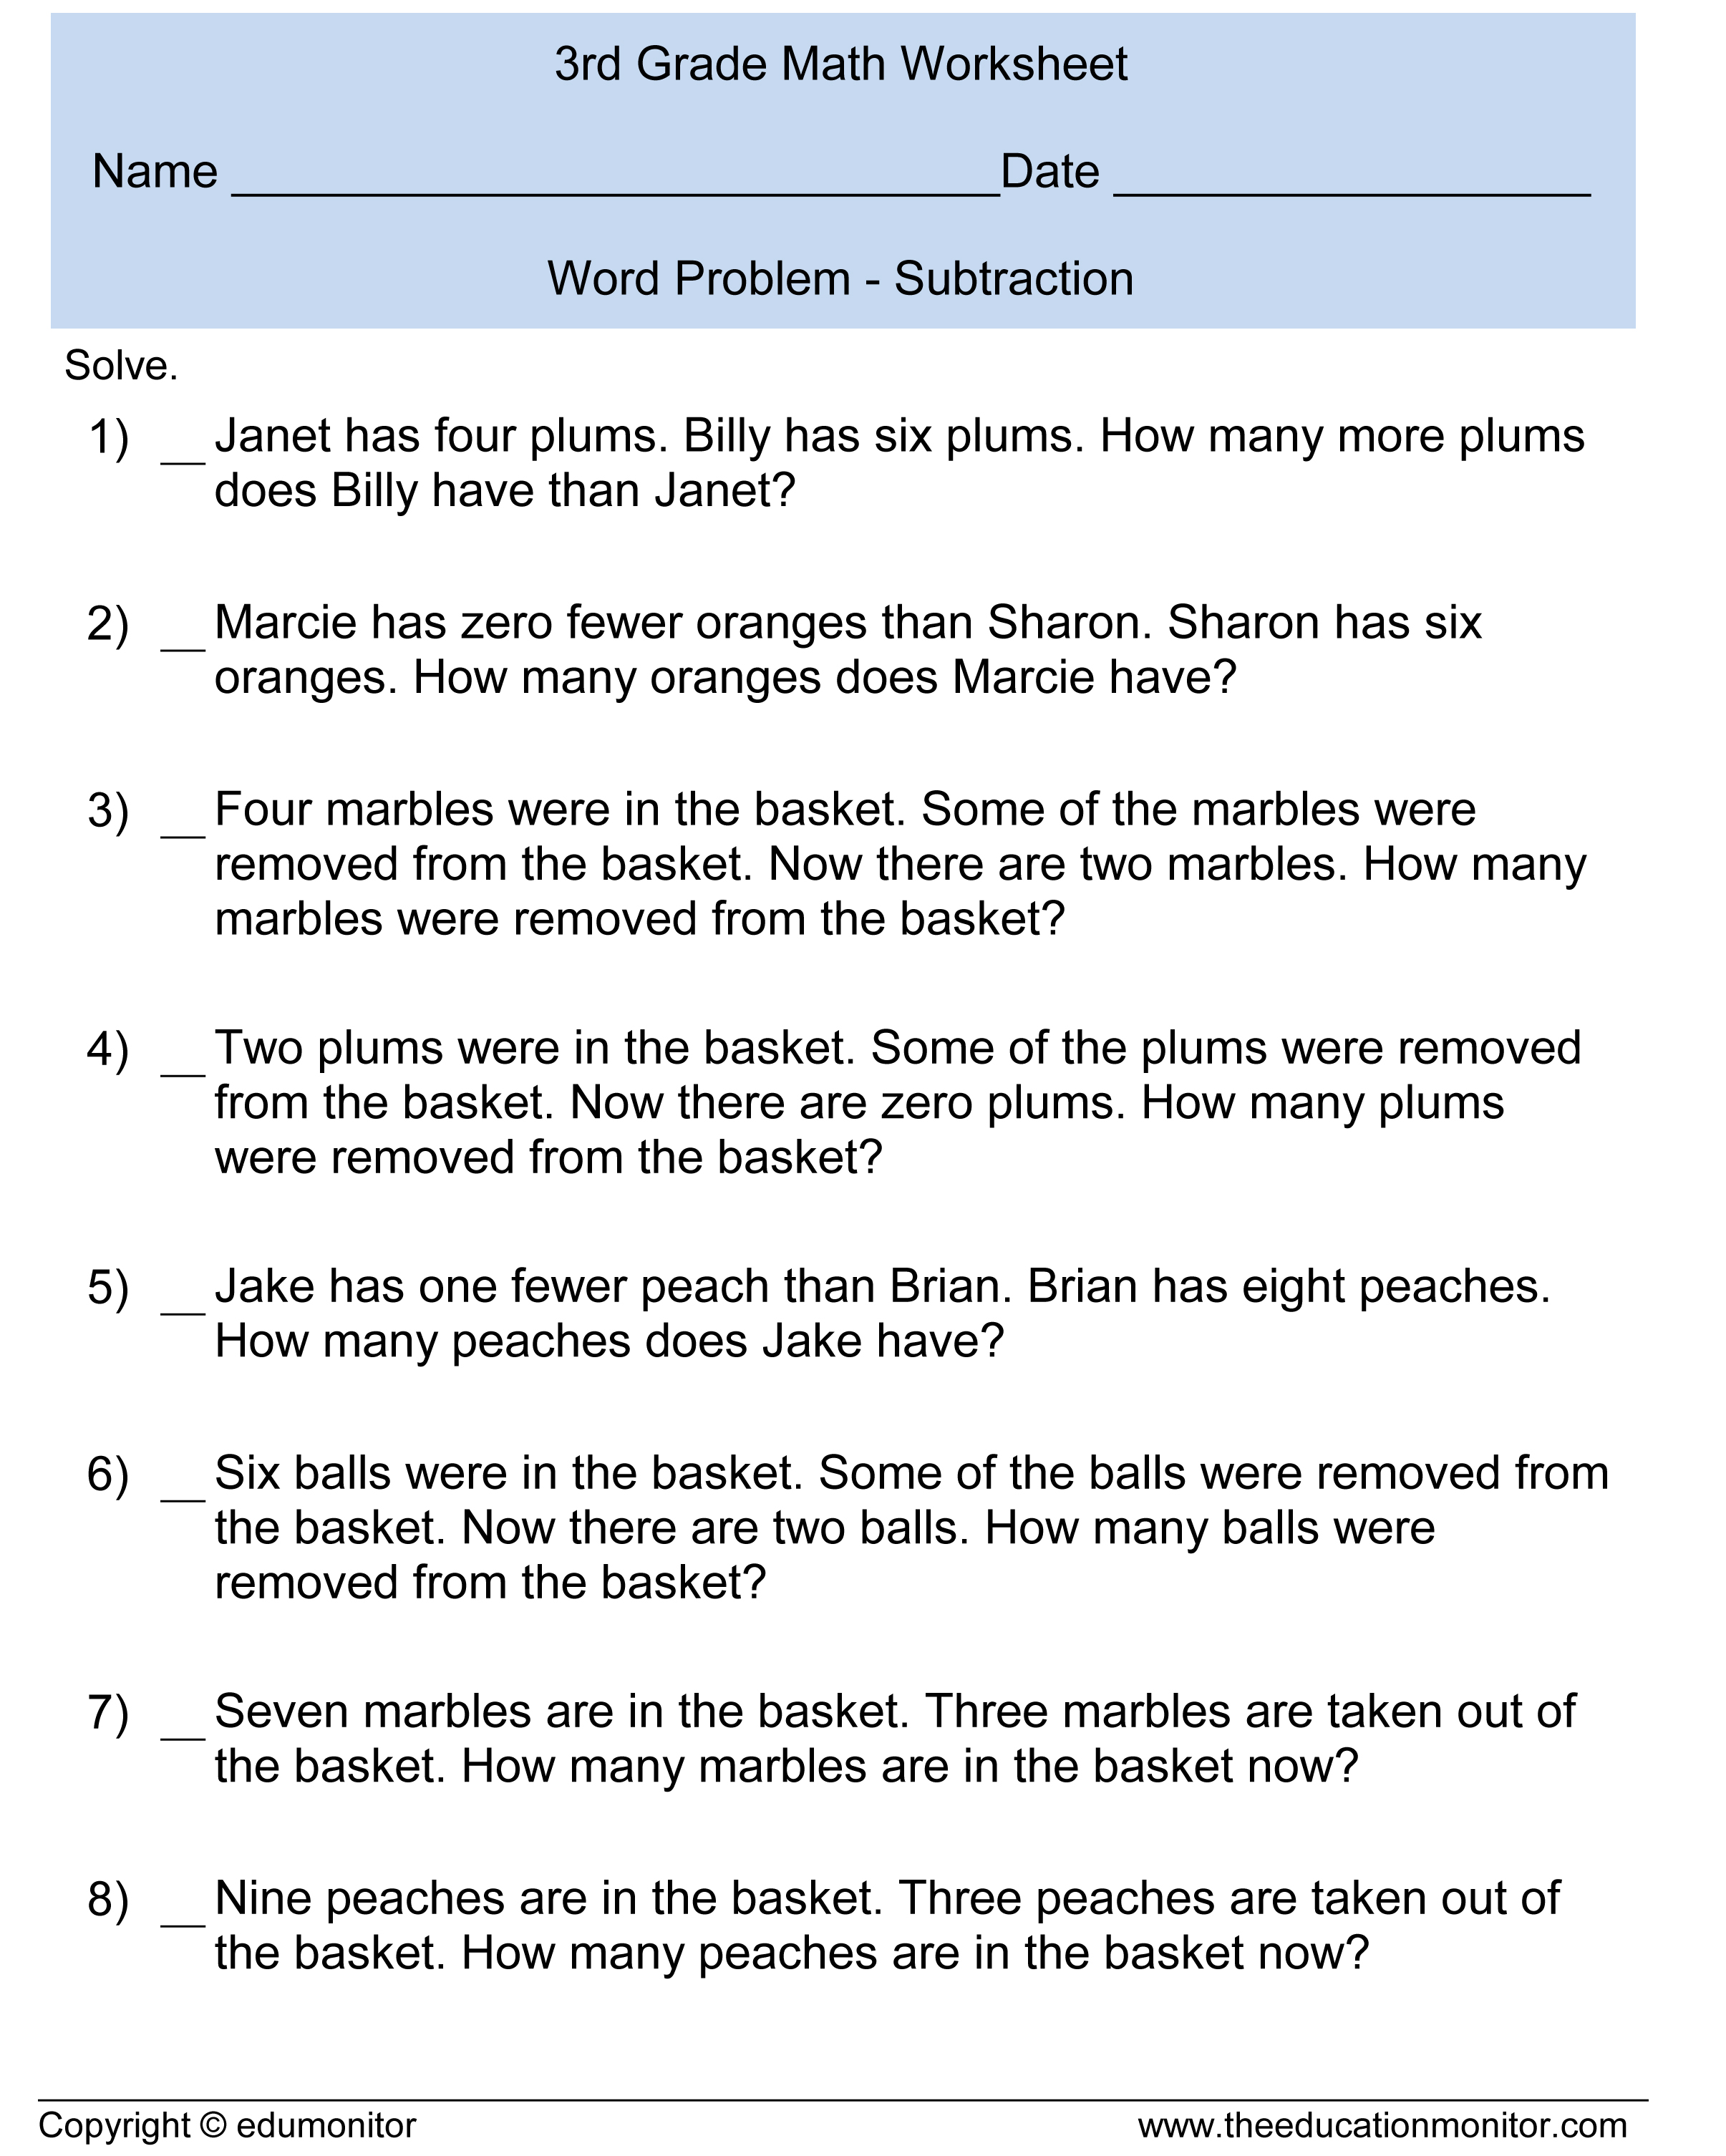 3rd Grade Math Fraction Word Problems Worksheets Worksheet Kids – 3rd Grade Math Word Problems Printable Worksheets